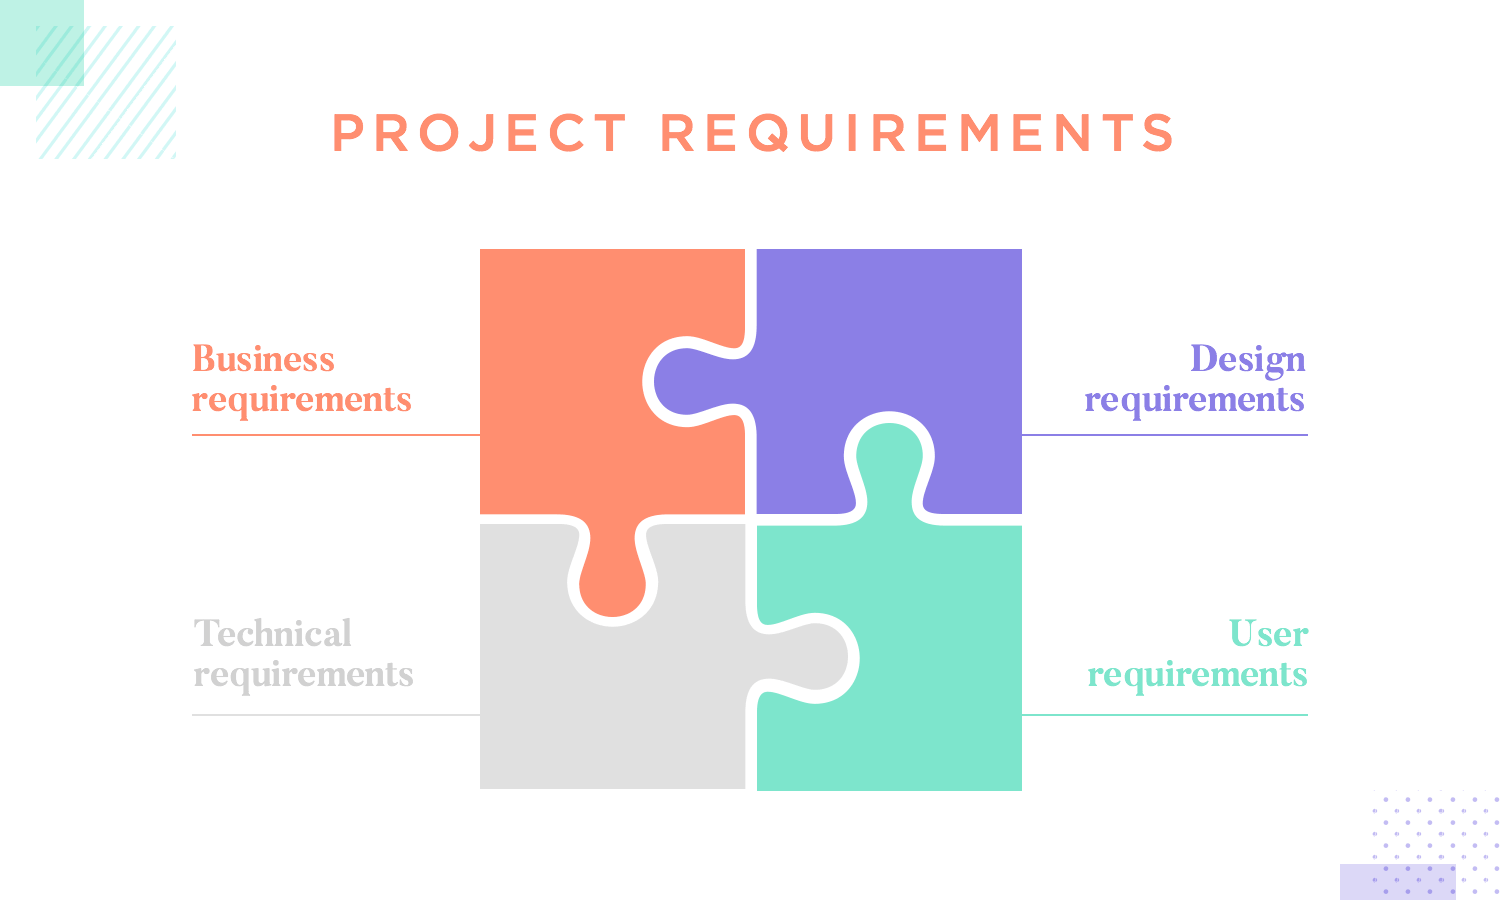 example of how requirements must align in the ux design process